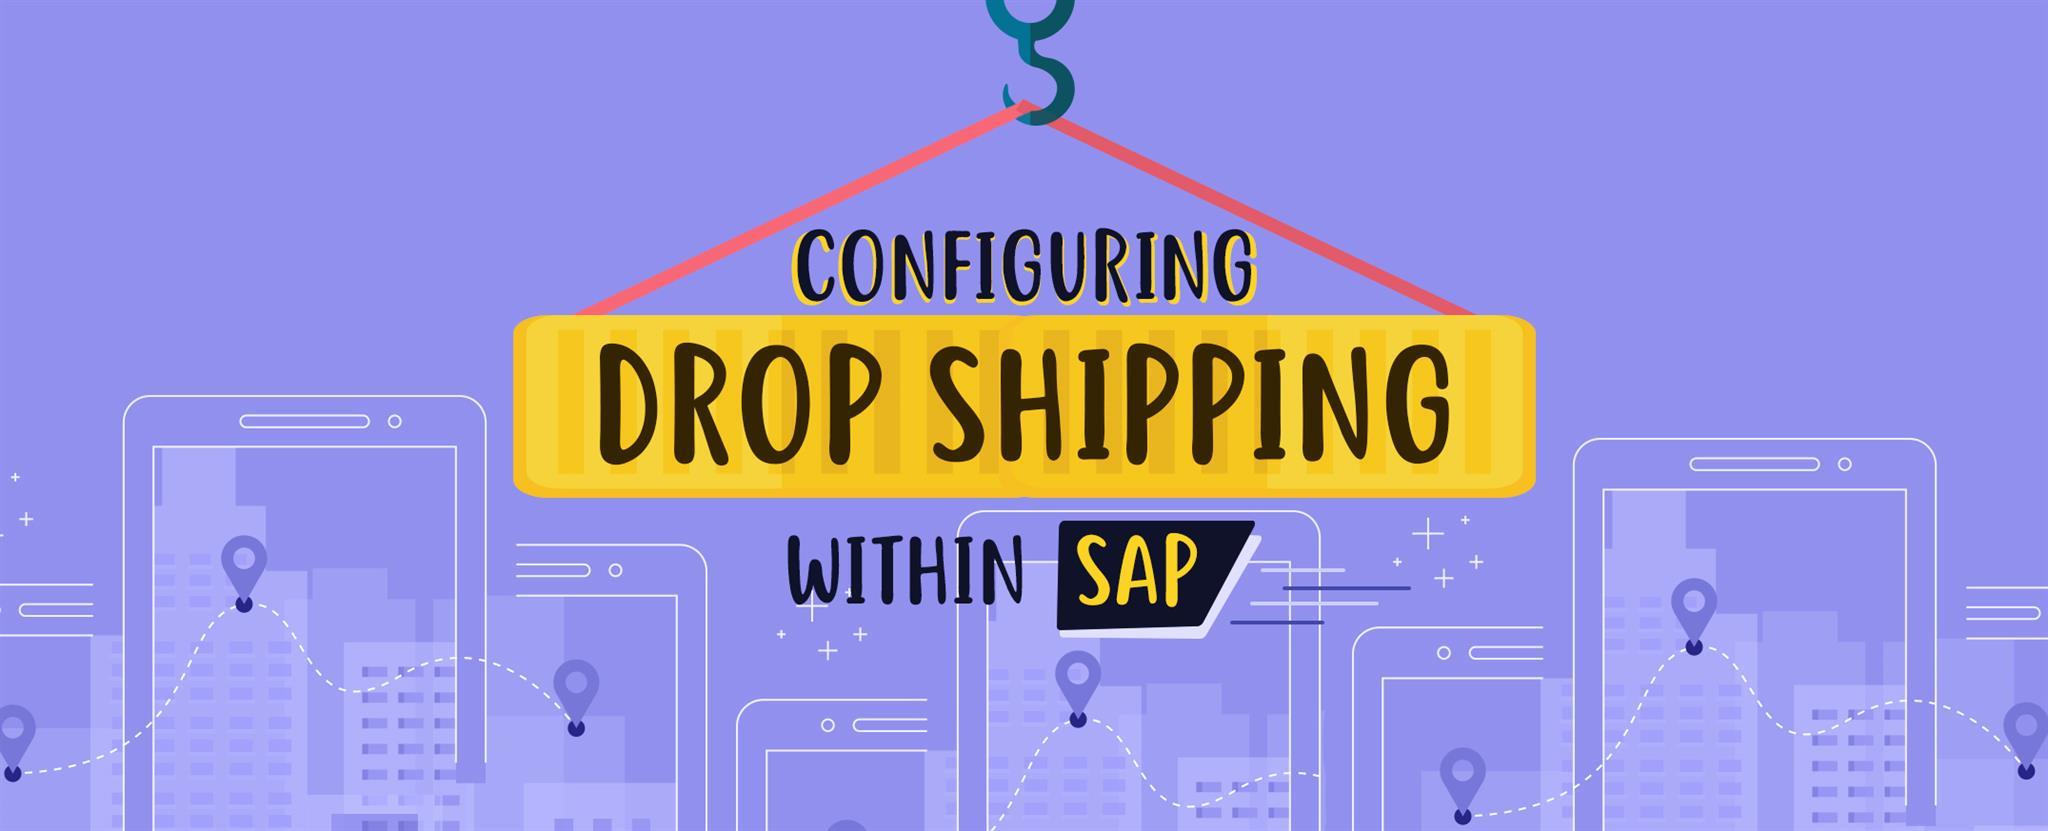 Configuring-Drop-Shipping-Within-SAP-1